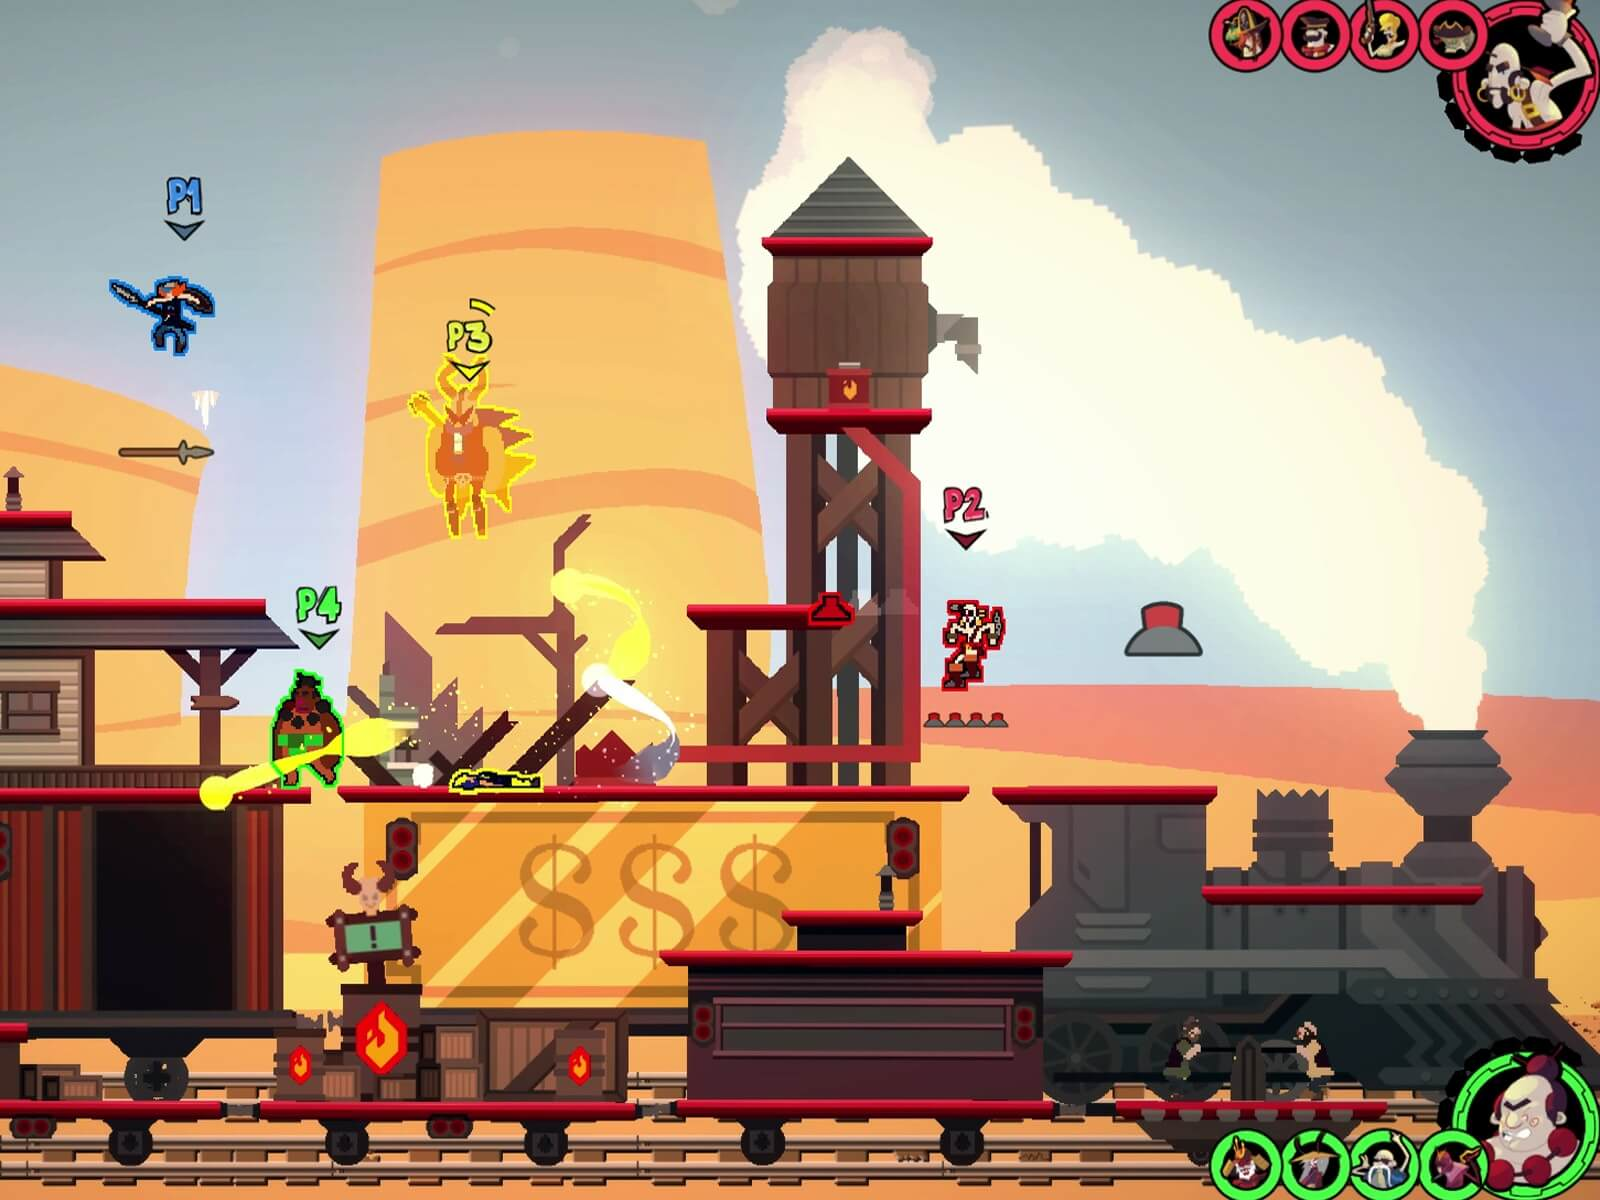 Screenshot from the Kaia Studios game Dynasty Feud, featuring a steam train passing through a western-style town